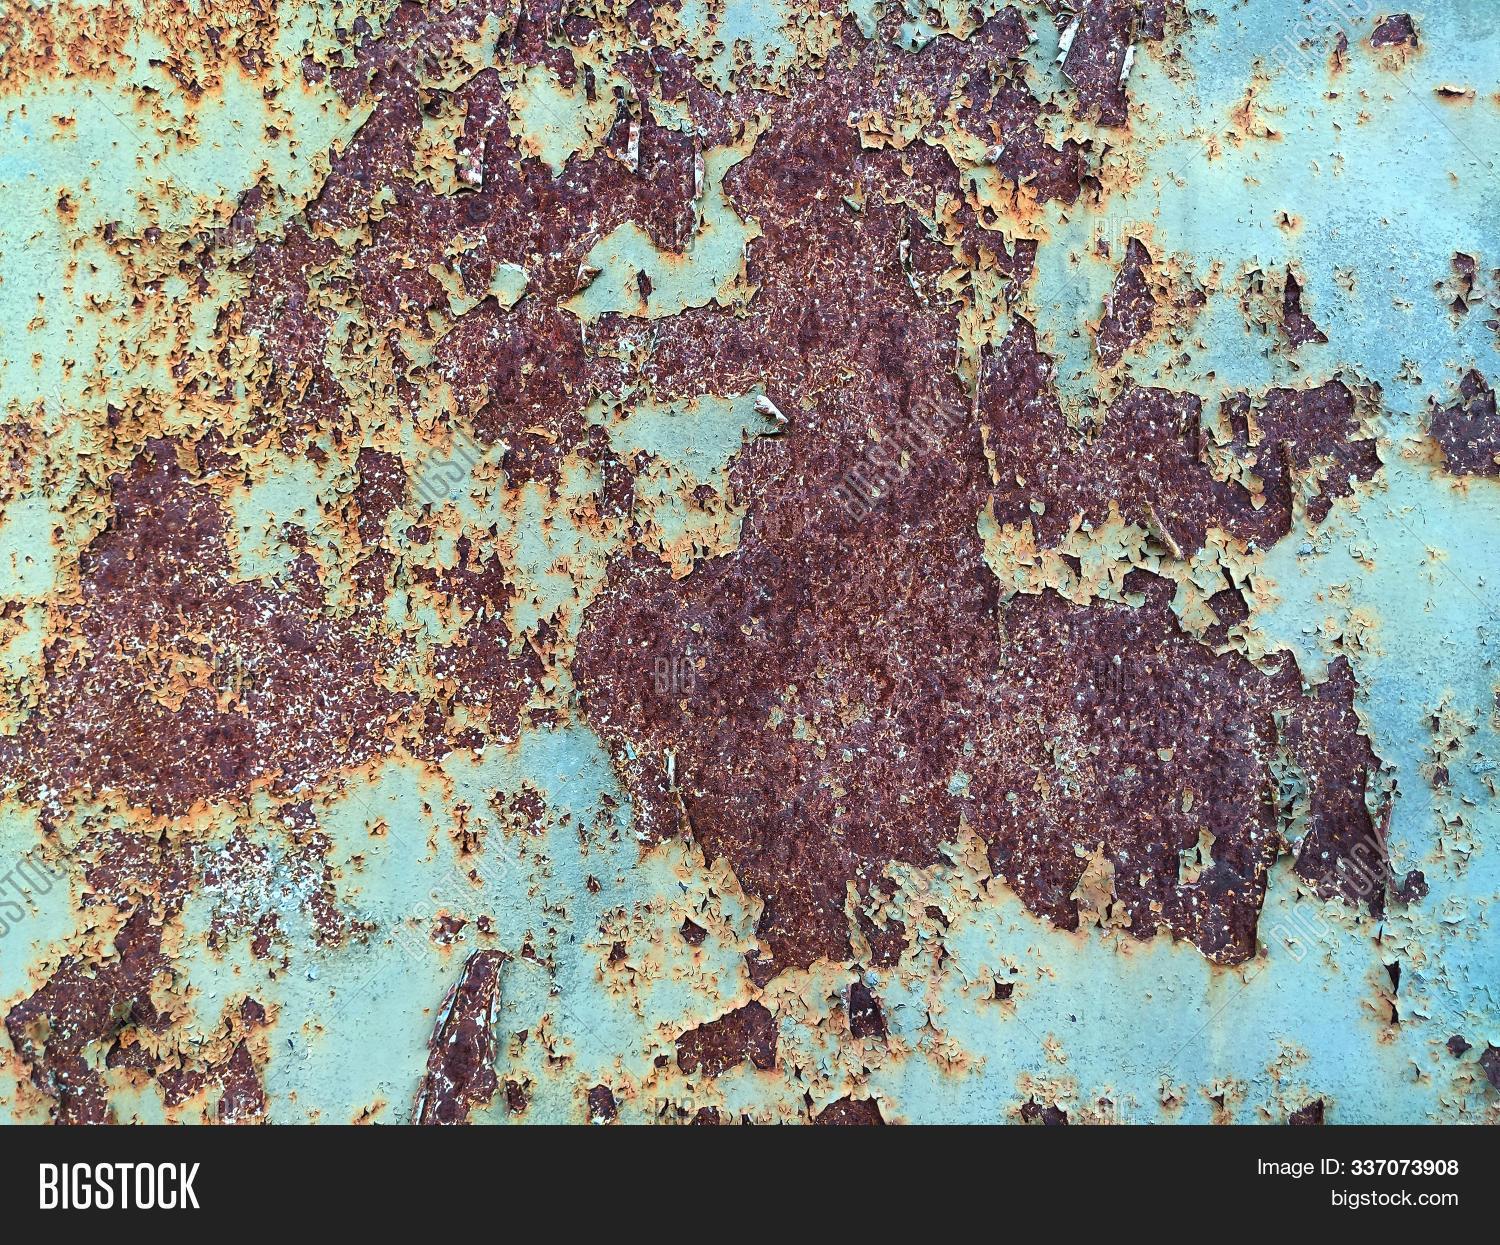 abandoned,aging,ancient,backdrop,background,closeup,corrode,corroded,corrosion,corrosive,damage,decay,demolished,distressed,diversity,iron,layer,material,metal,metallic,obsolete,old,oxidation,oxidize,oxidized,paint,patch,patchy,peeled,rust,rusted,rustic,rusting,rusty,rysty,scratch,shabby,shattered,sheet,stains,steel,streaks,surface,texture,textured,tough,wall,weathered,white